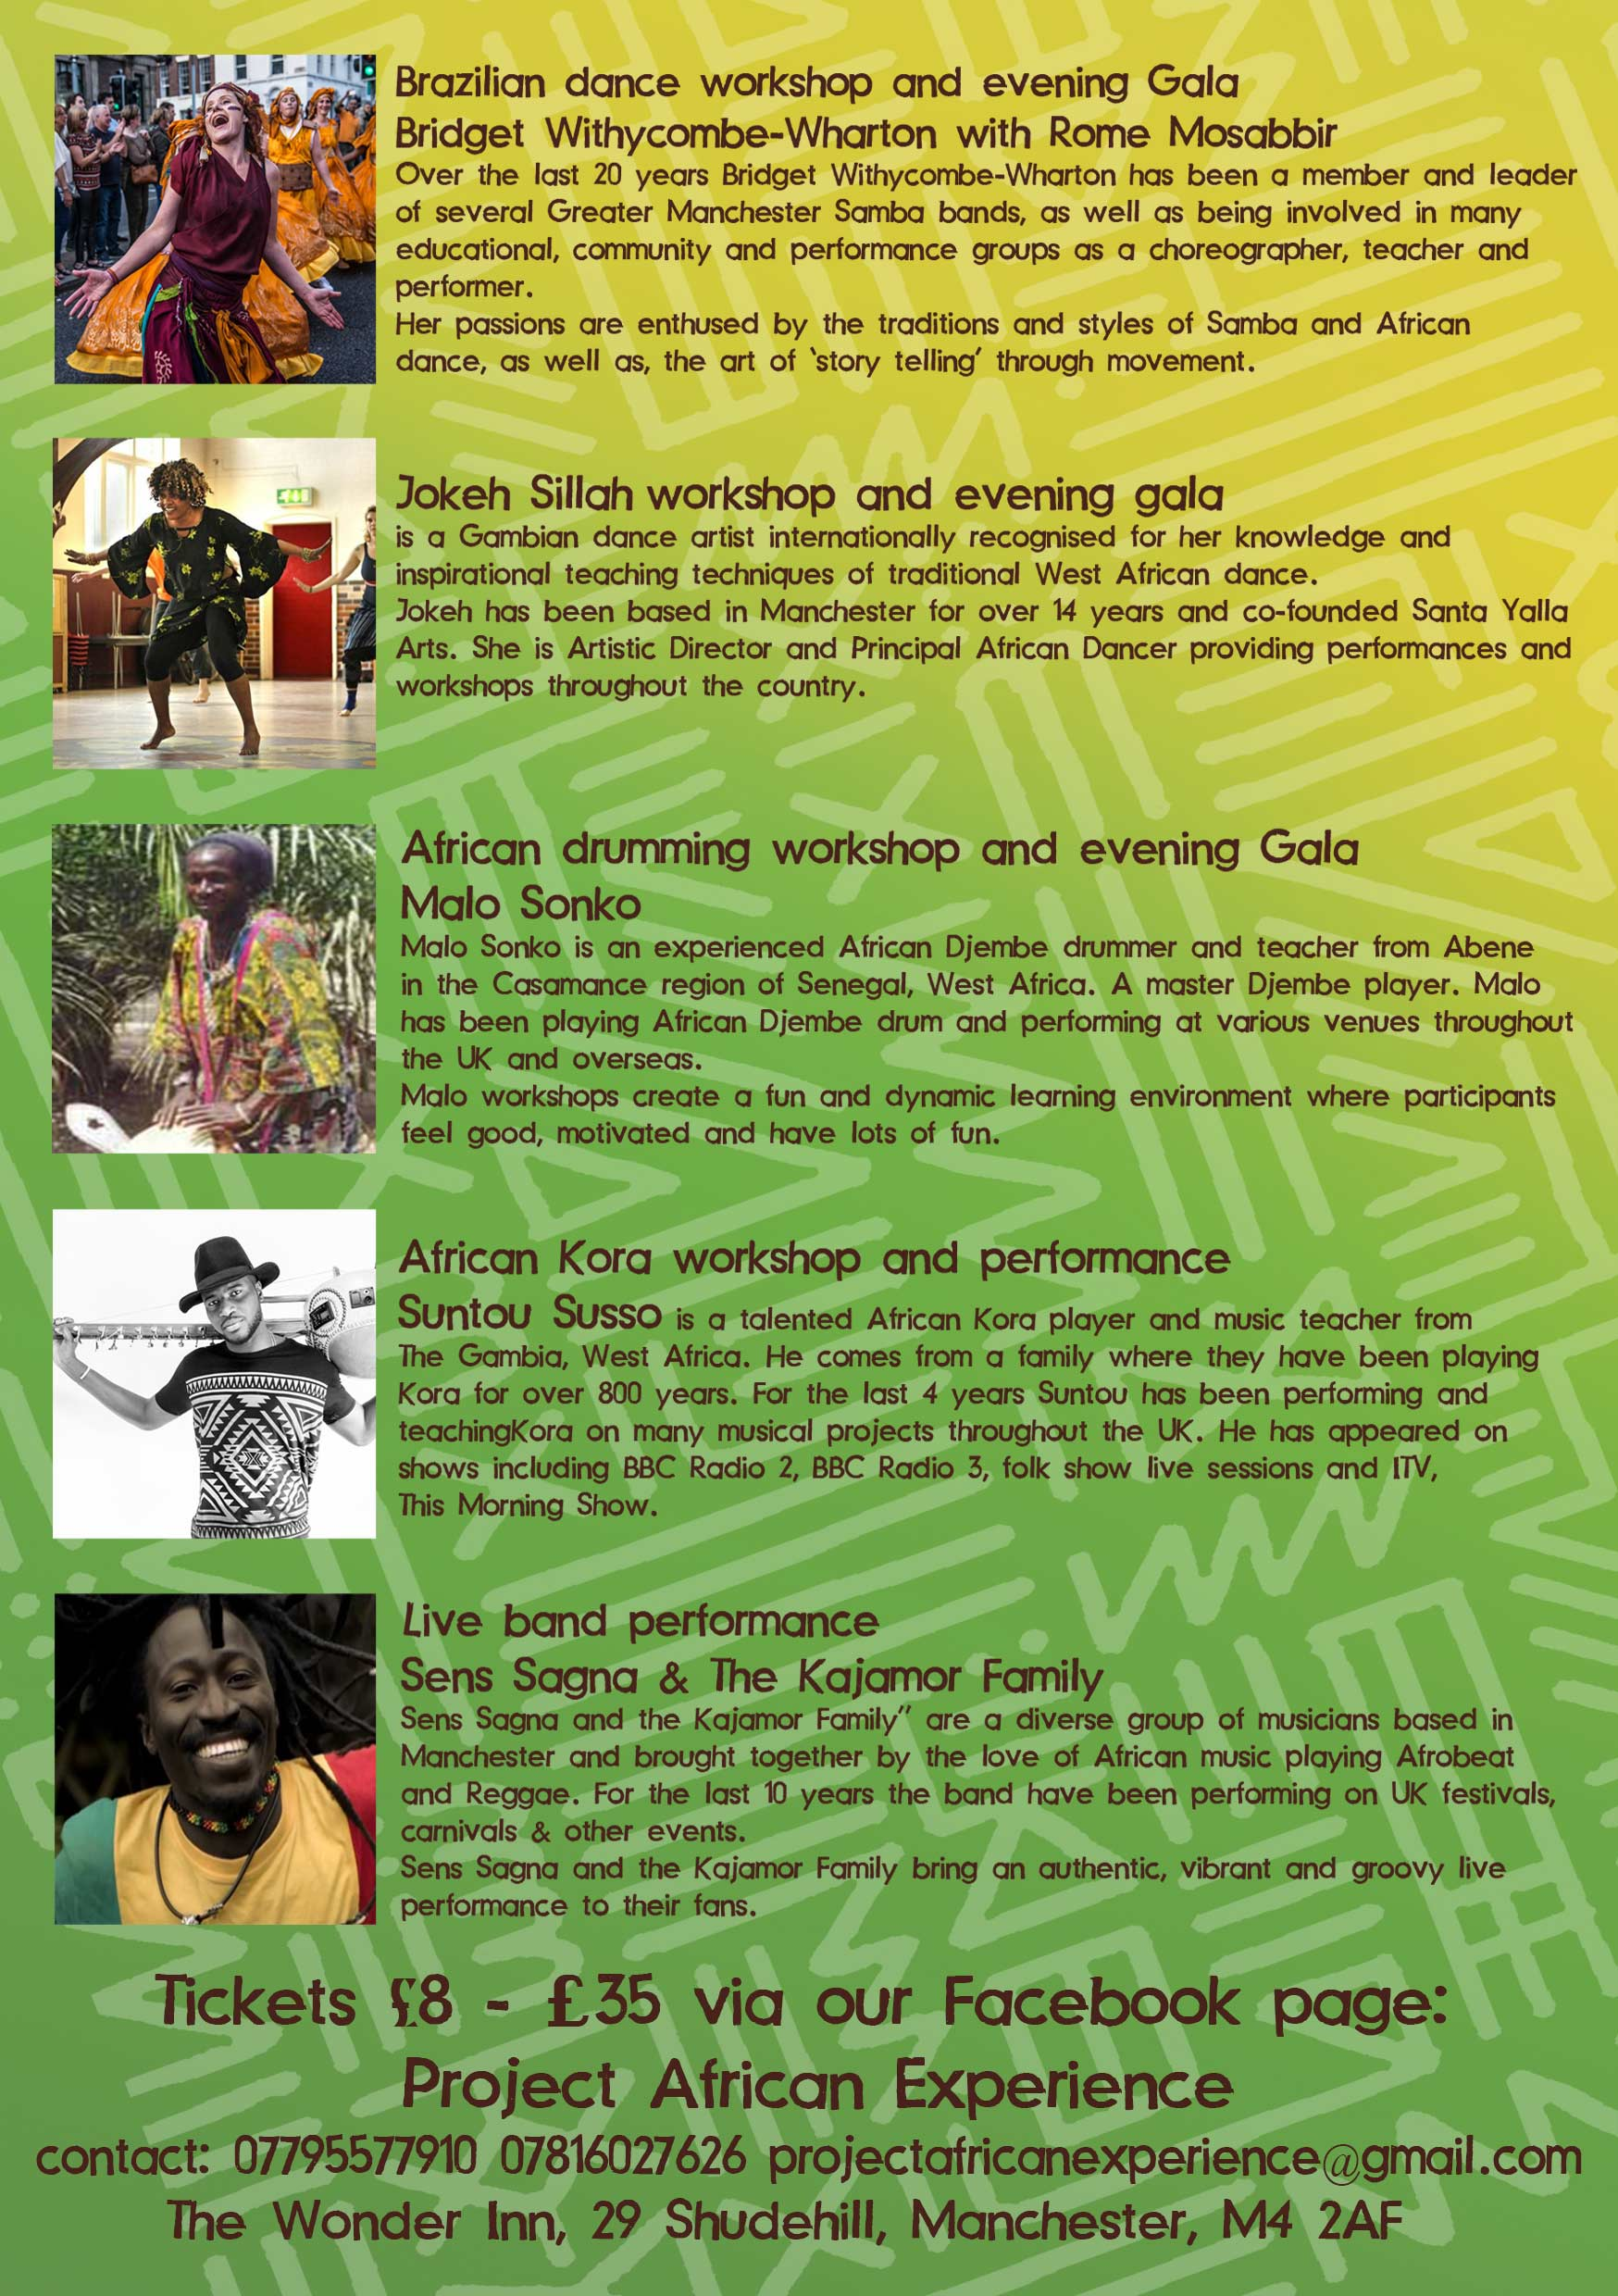 Project African Experience artists and DJs